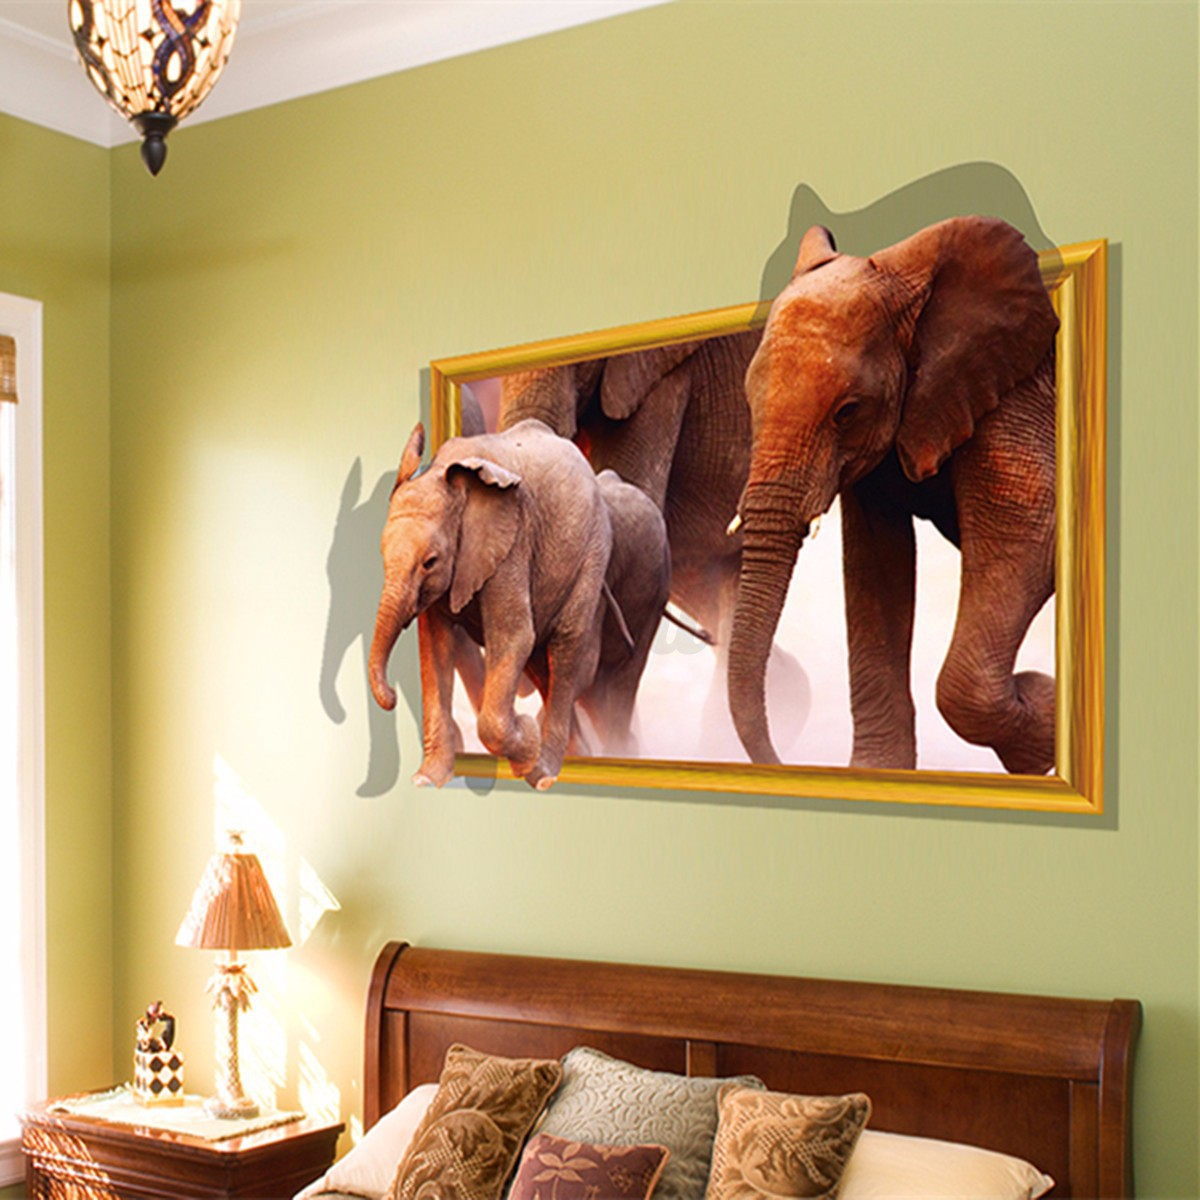 3d removable animals window view wall sticker decals mural for Decor mural 3d